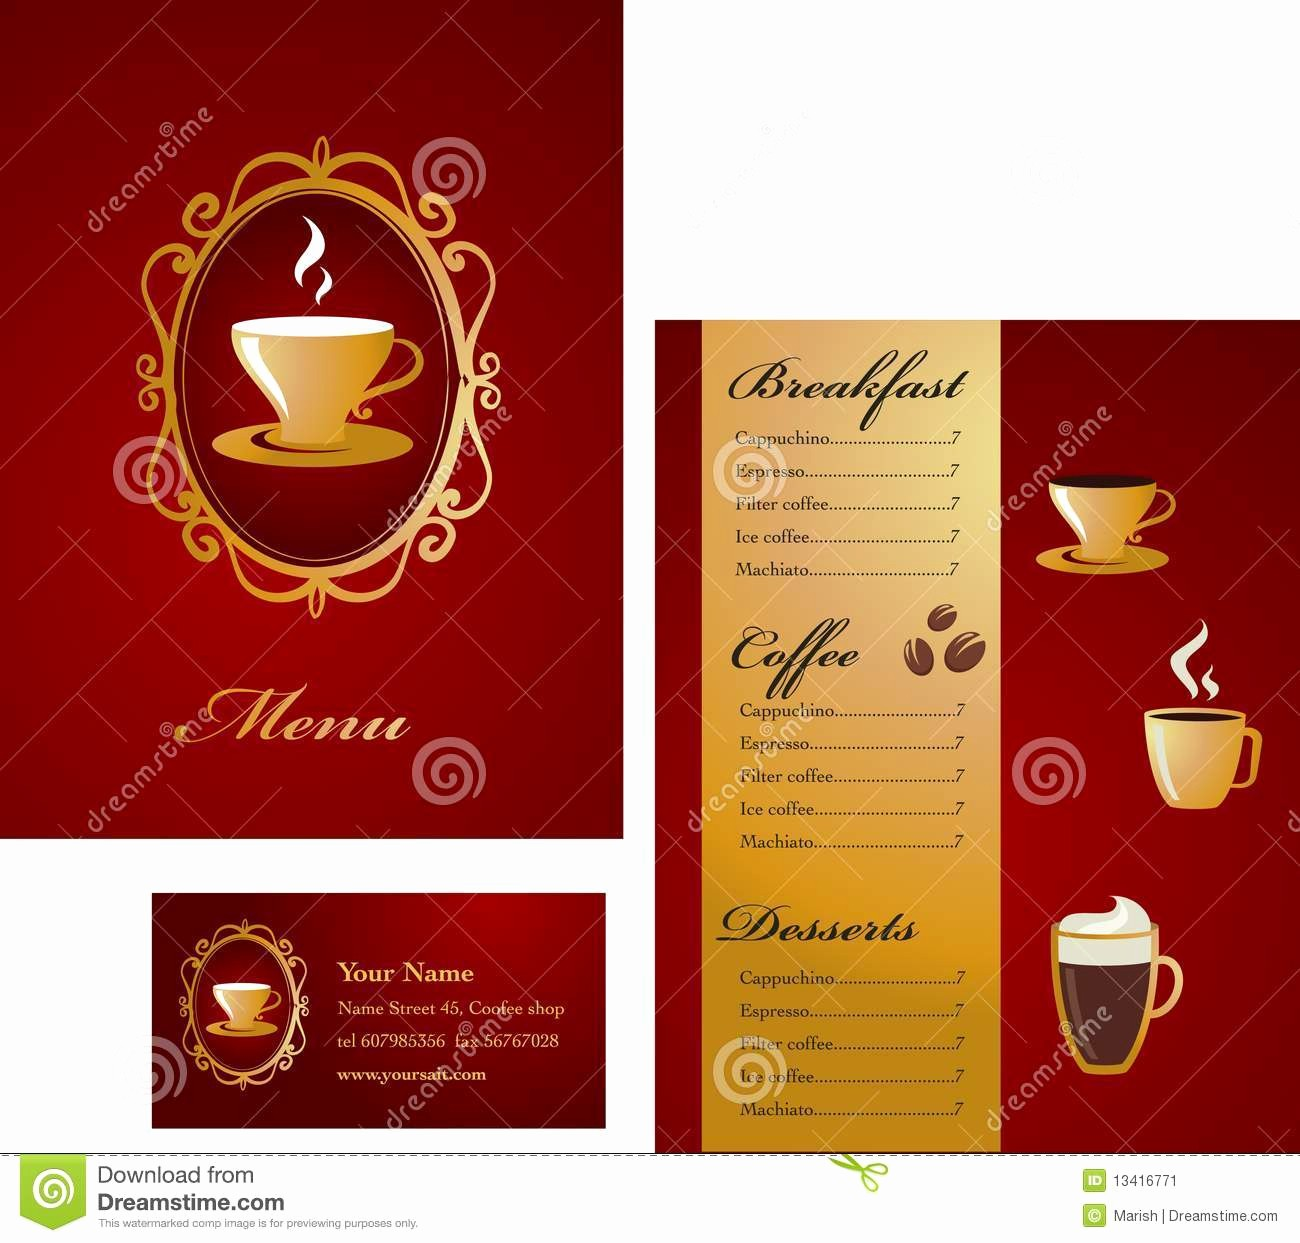 Menu Card Template Free Download New Card Menu Card Template